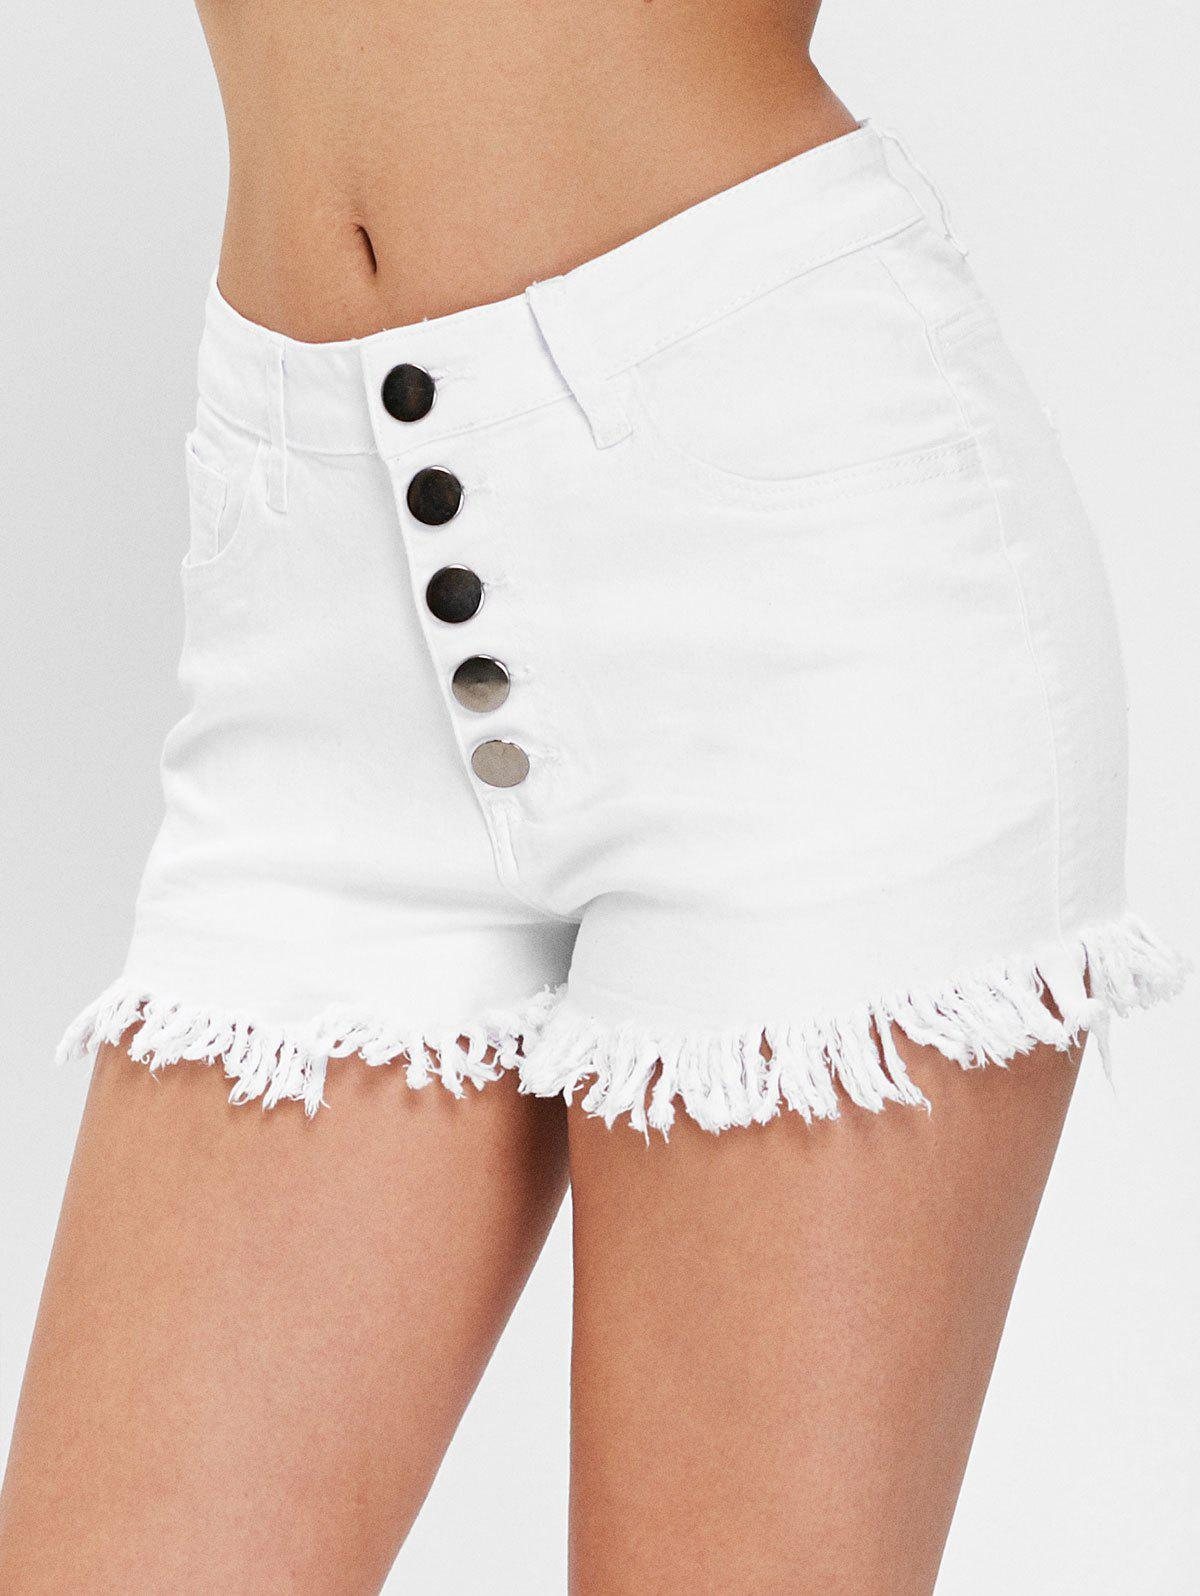 Fashion Button Fly Frayed Trim Jeans Shorts